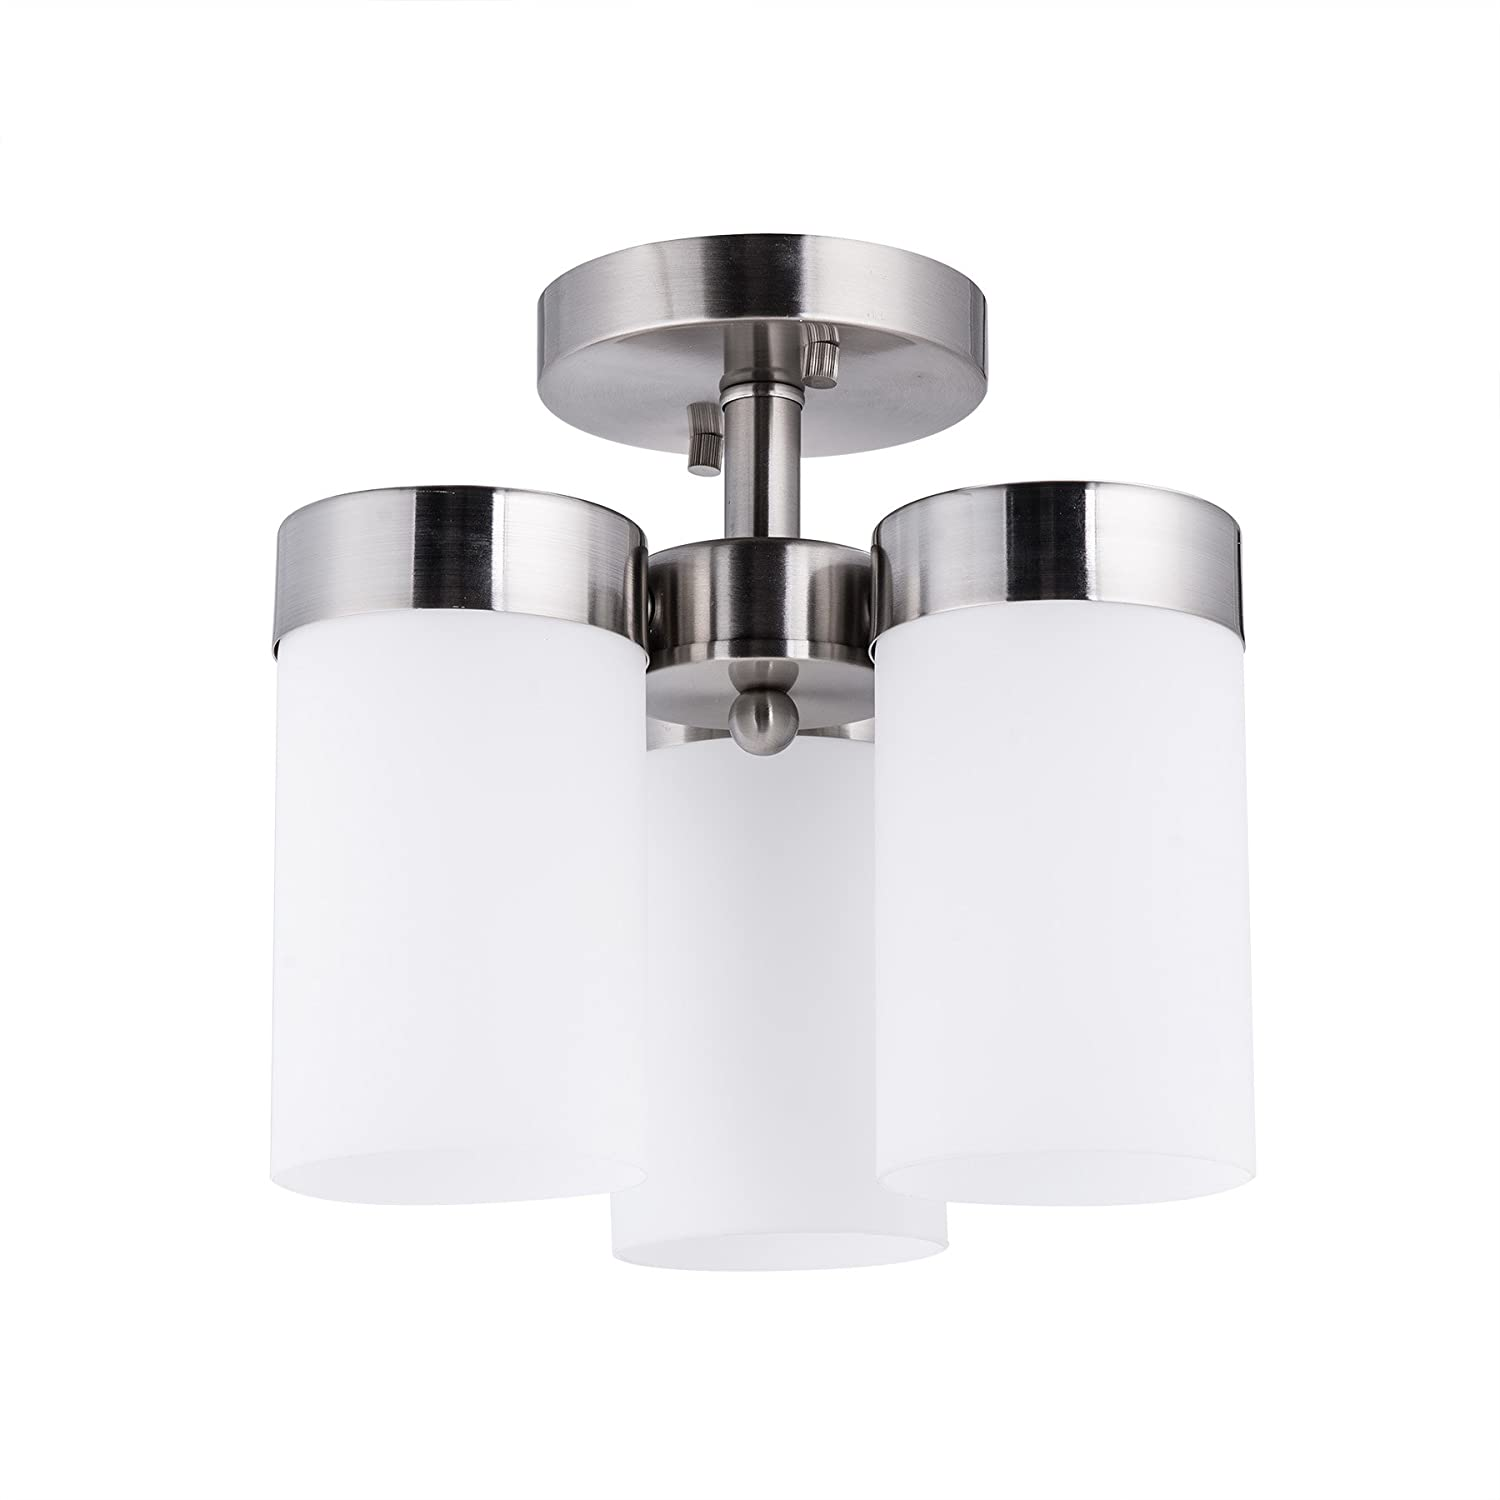 Co z 3 light semi flush mount nickel finish mini chandelier modern ceiling light fixture for dining room kitchen bedroom with satin etched cased opal glass